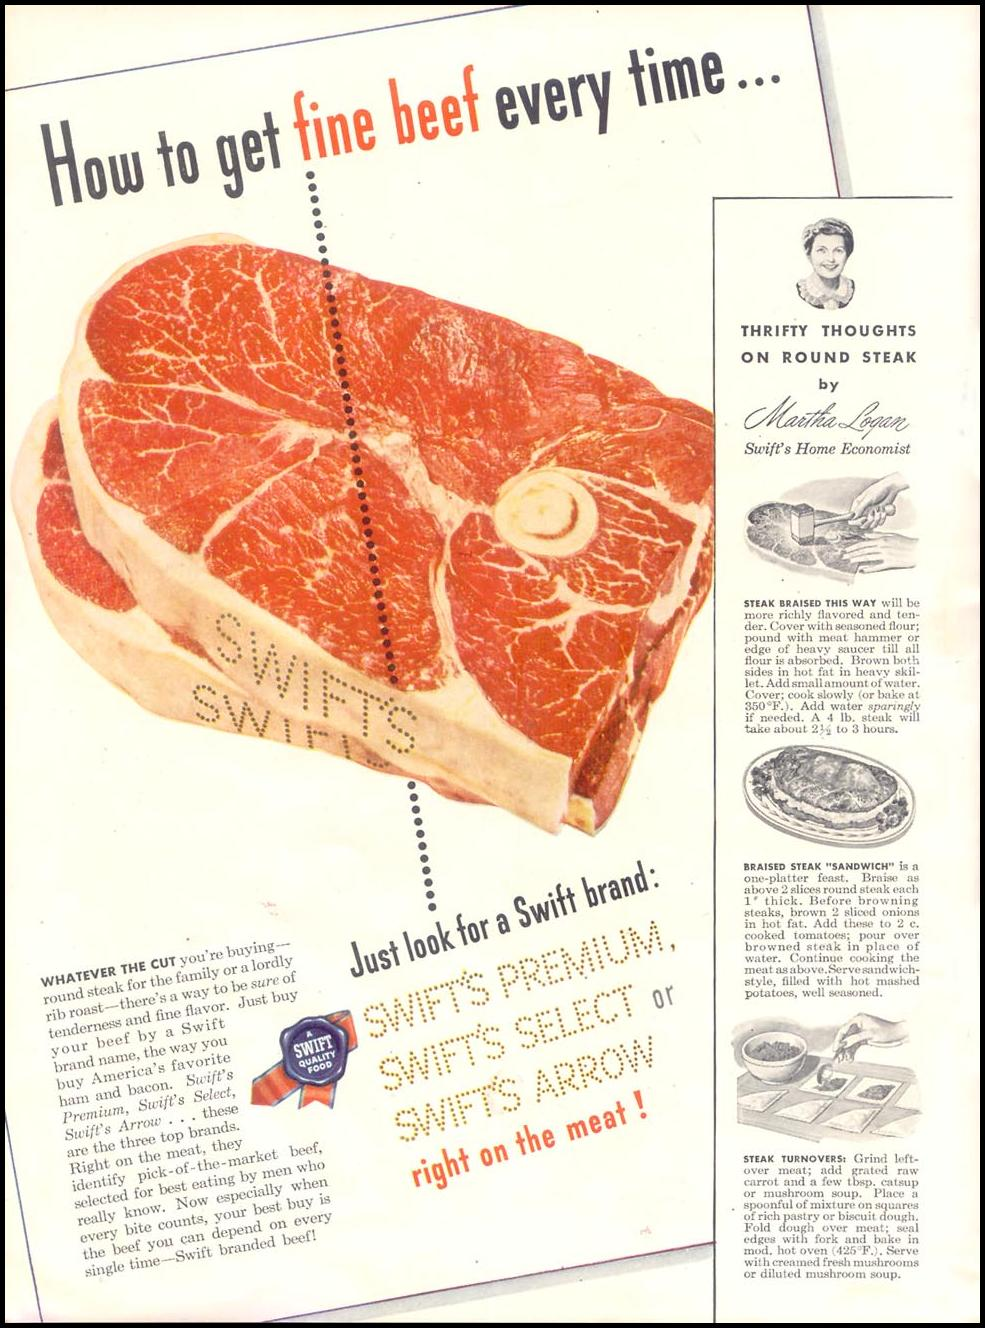 SWIFT'S PREMIUM BEEF